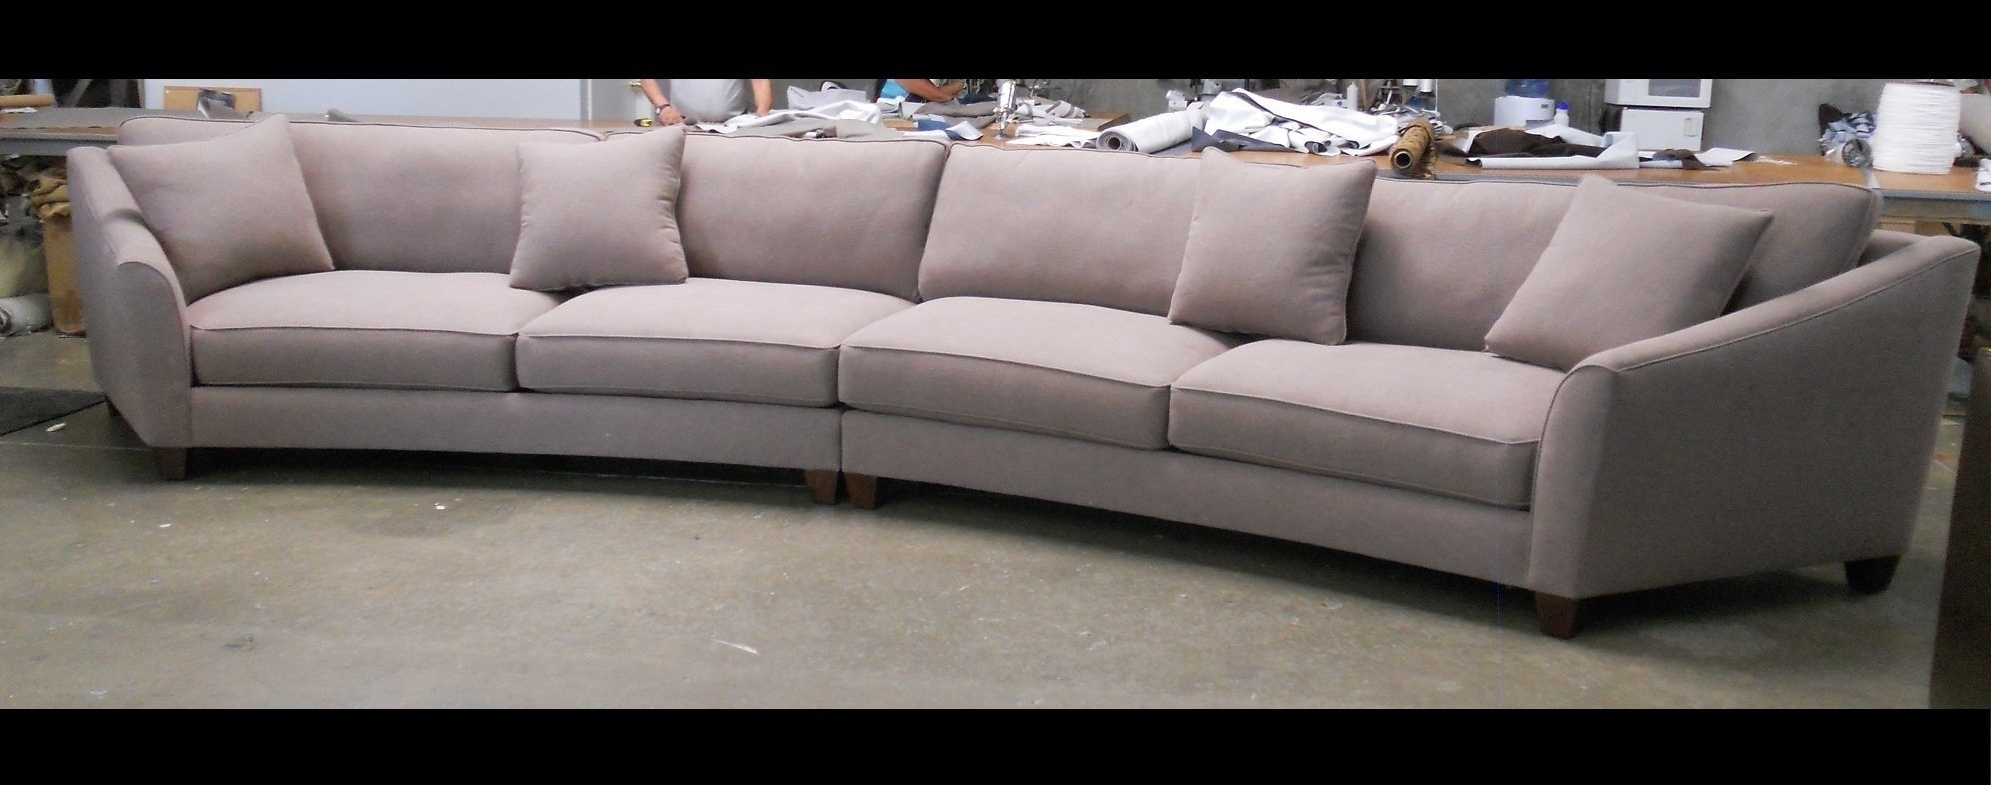 Nz Sectional Sofas For Preferred Furniture : 5060 Recliner Sectional Sofa Costco $699 Corner Couch (View 14 of 20)